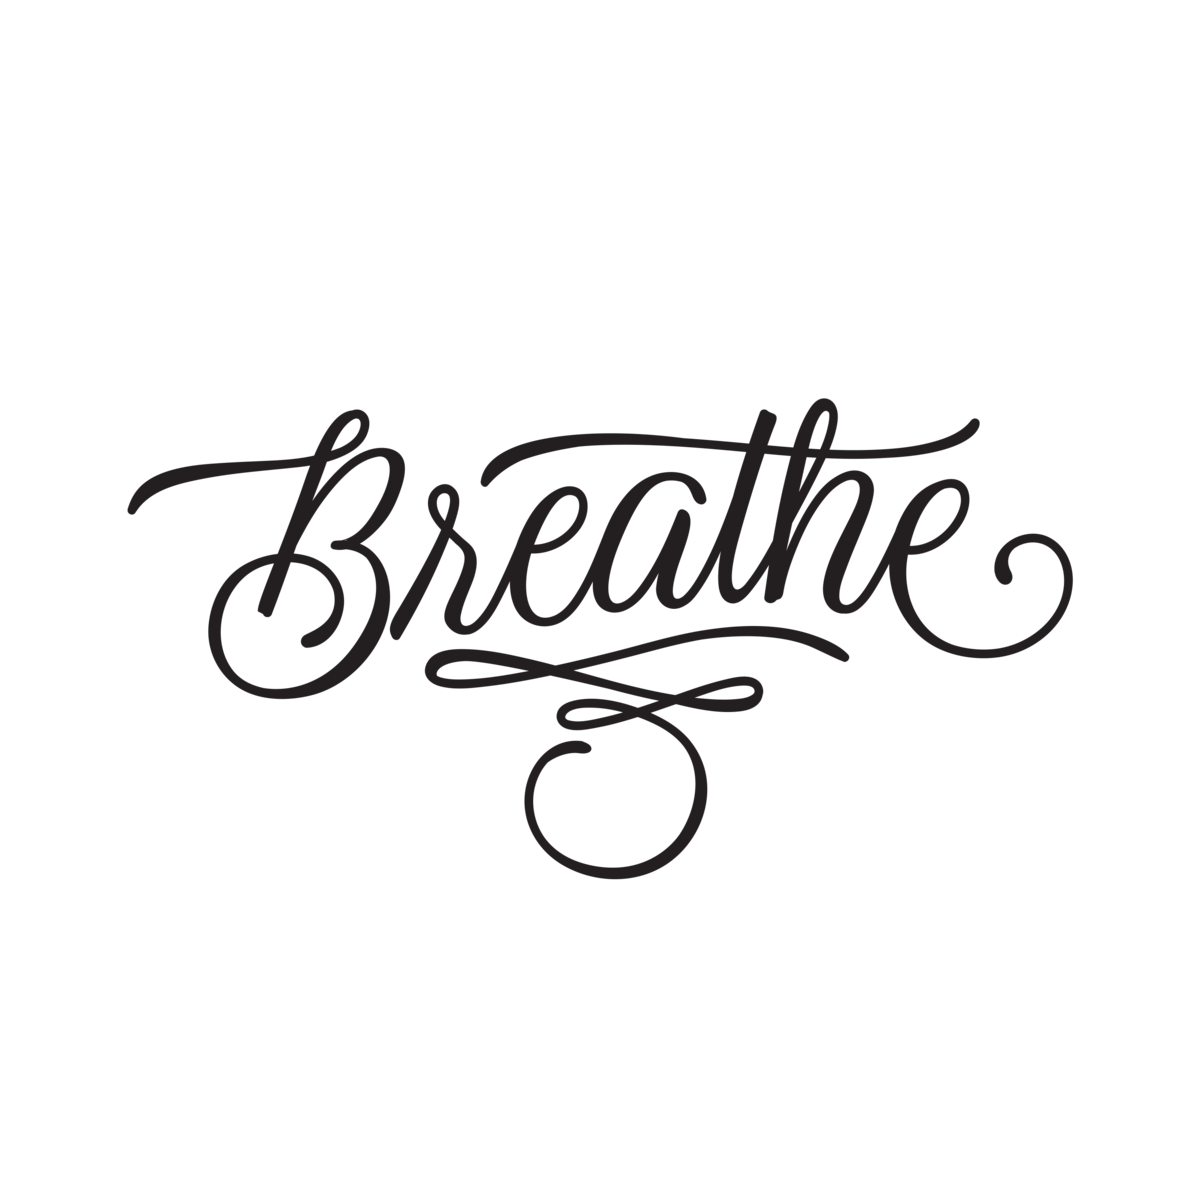 Infinity transparent fake tattoo. Breathe tattoos quotes by